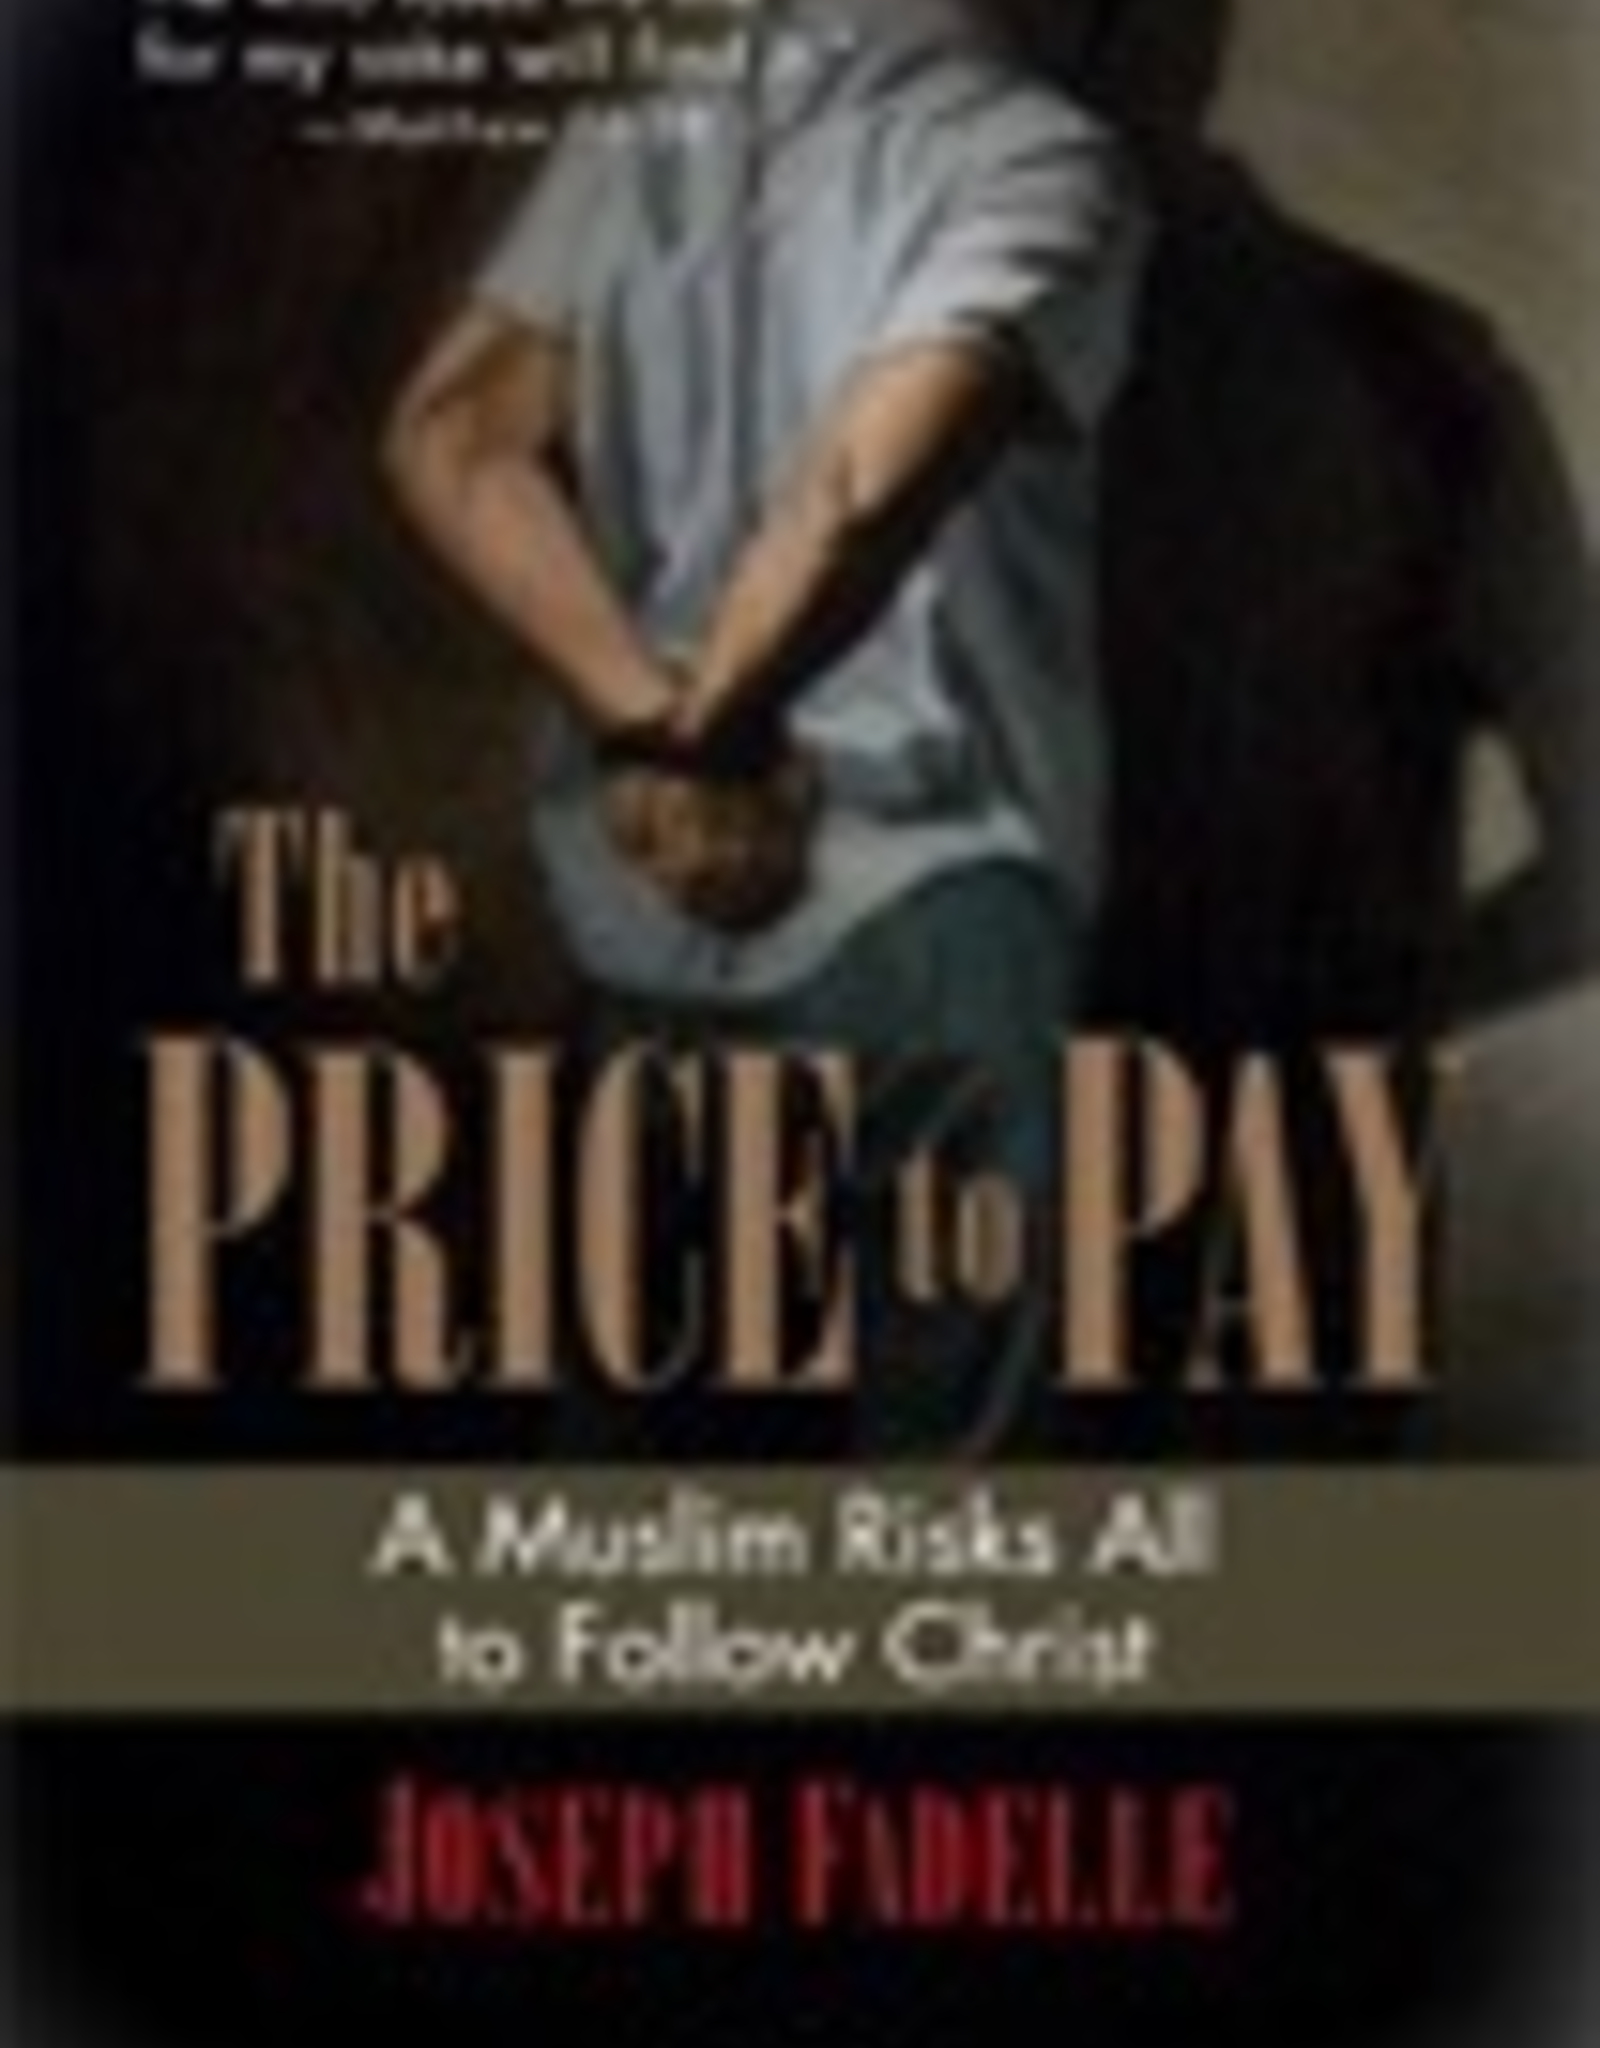 Ignatius Press The Price to Pay:  A Muslim Risks All to Follow Christ, A True Story,  by Joseph Fadelle (hardcover)